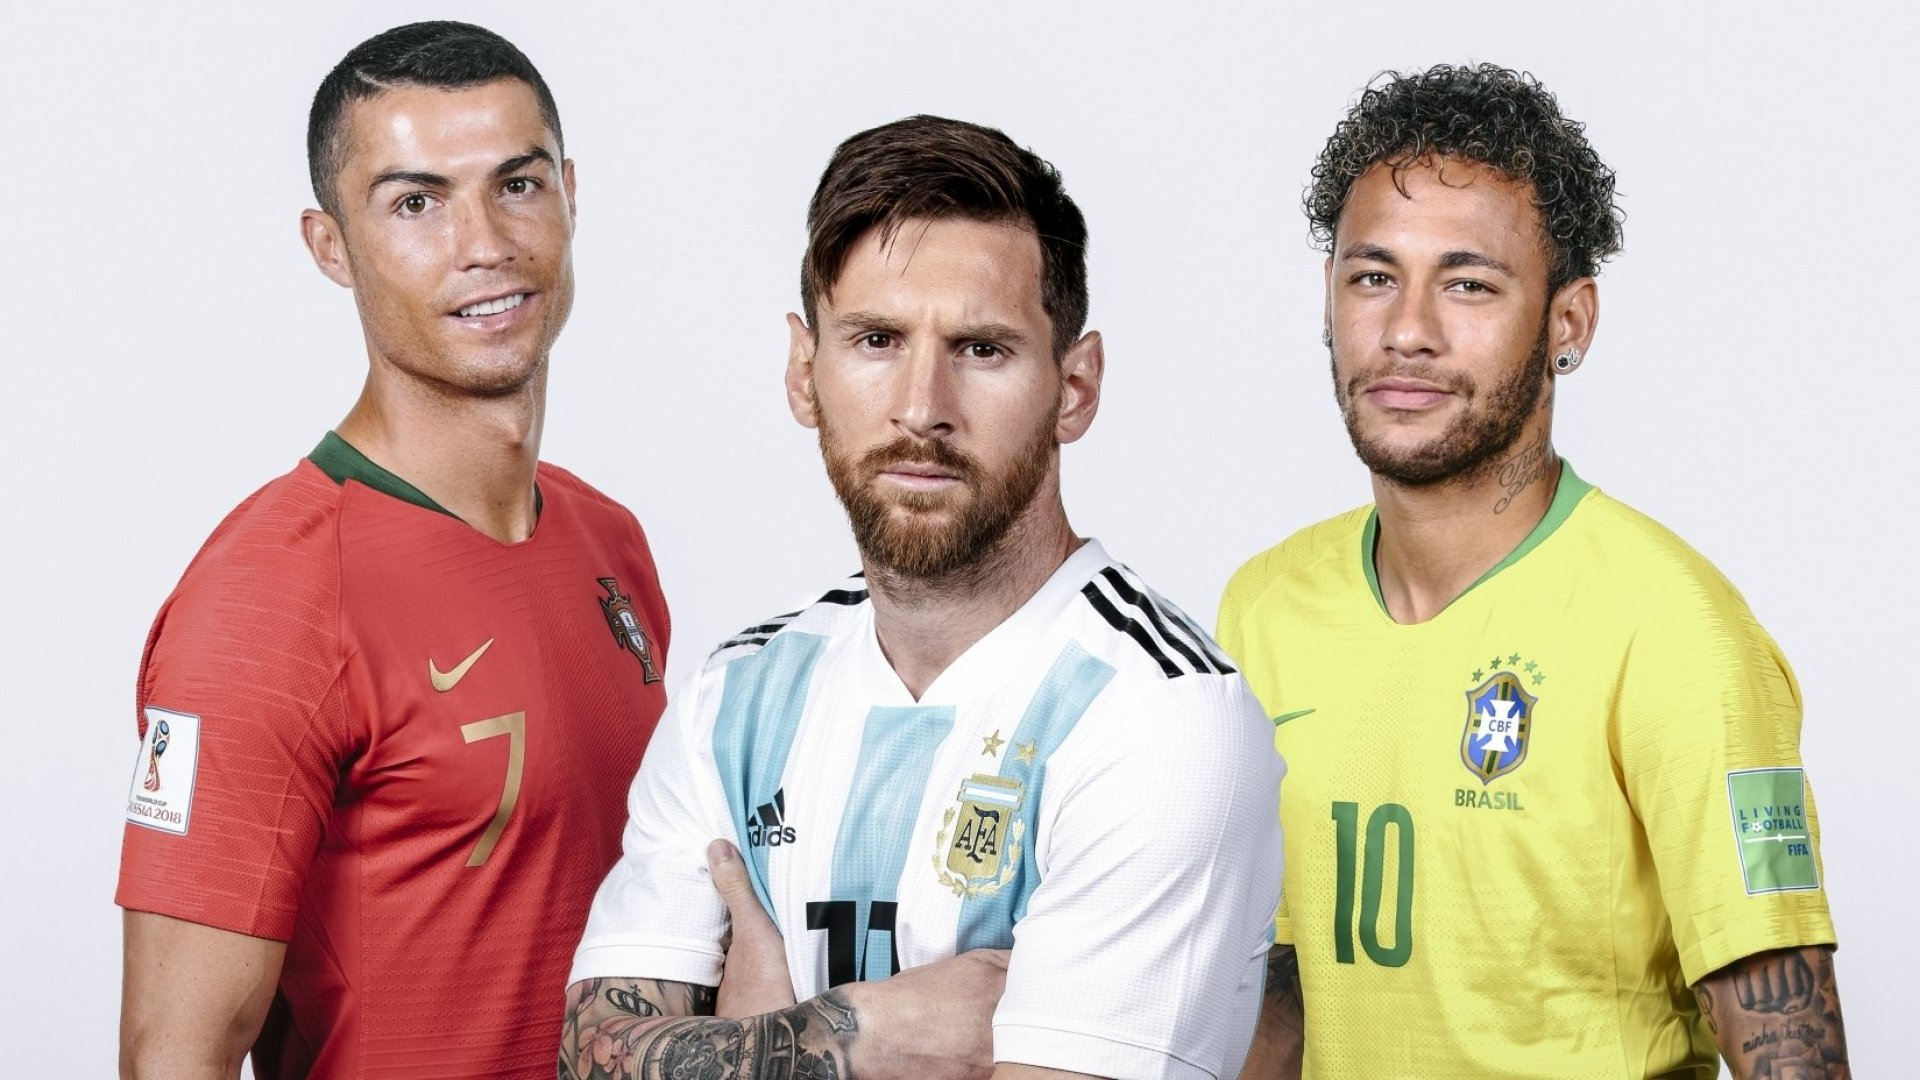 Why Fans Worldwide Are Obsessed With the World Cup. Use the Same Principle to Grow Your Business